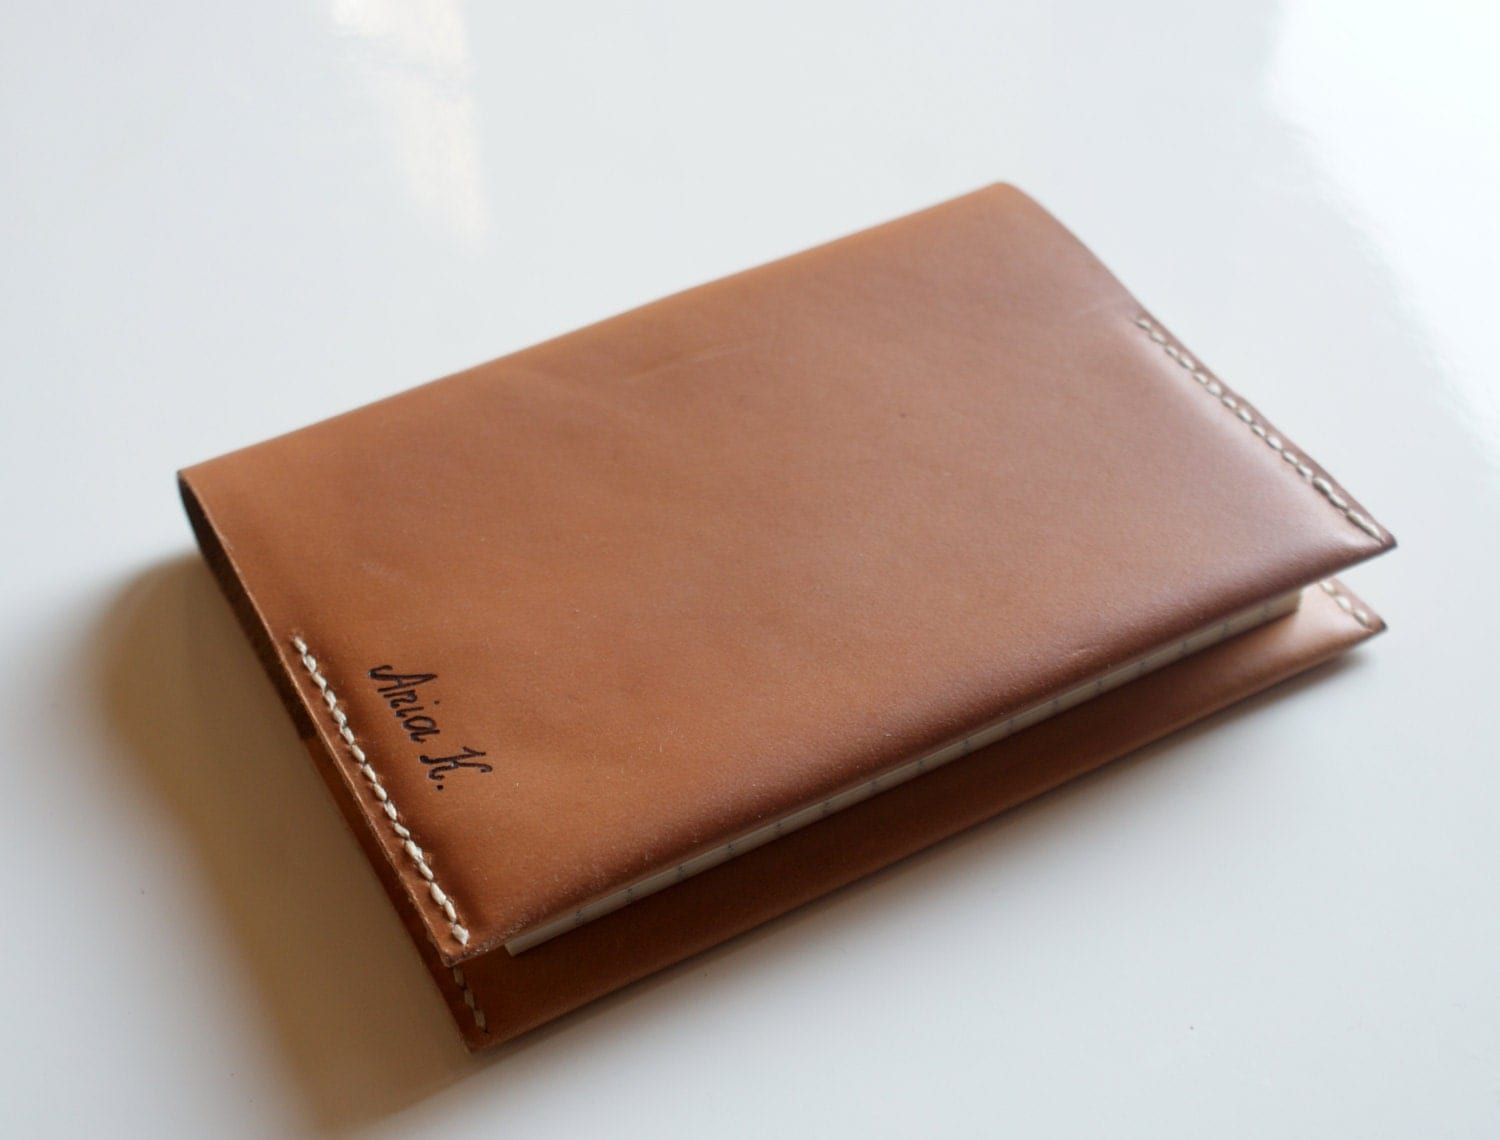 Leather Notebook With Letter On Cover